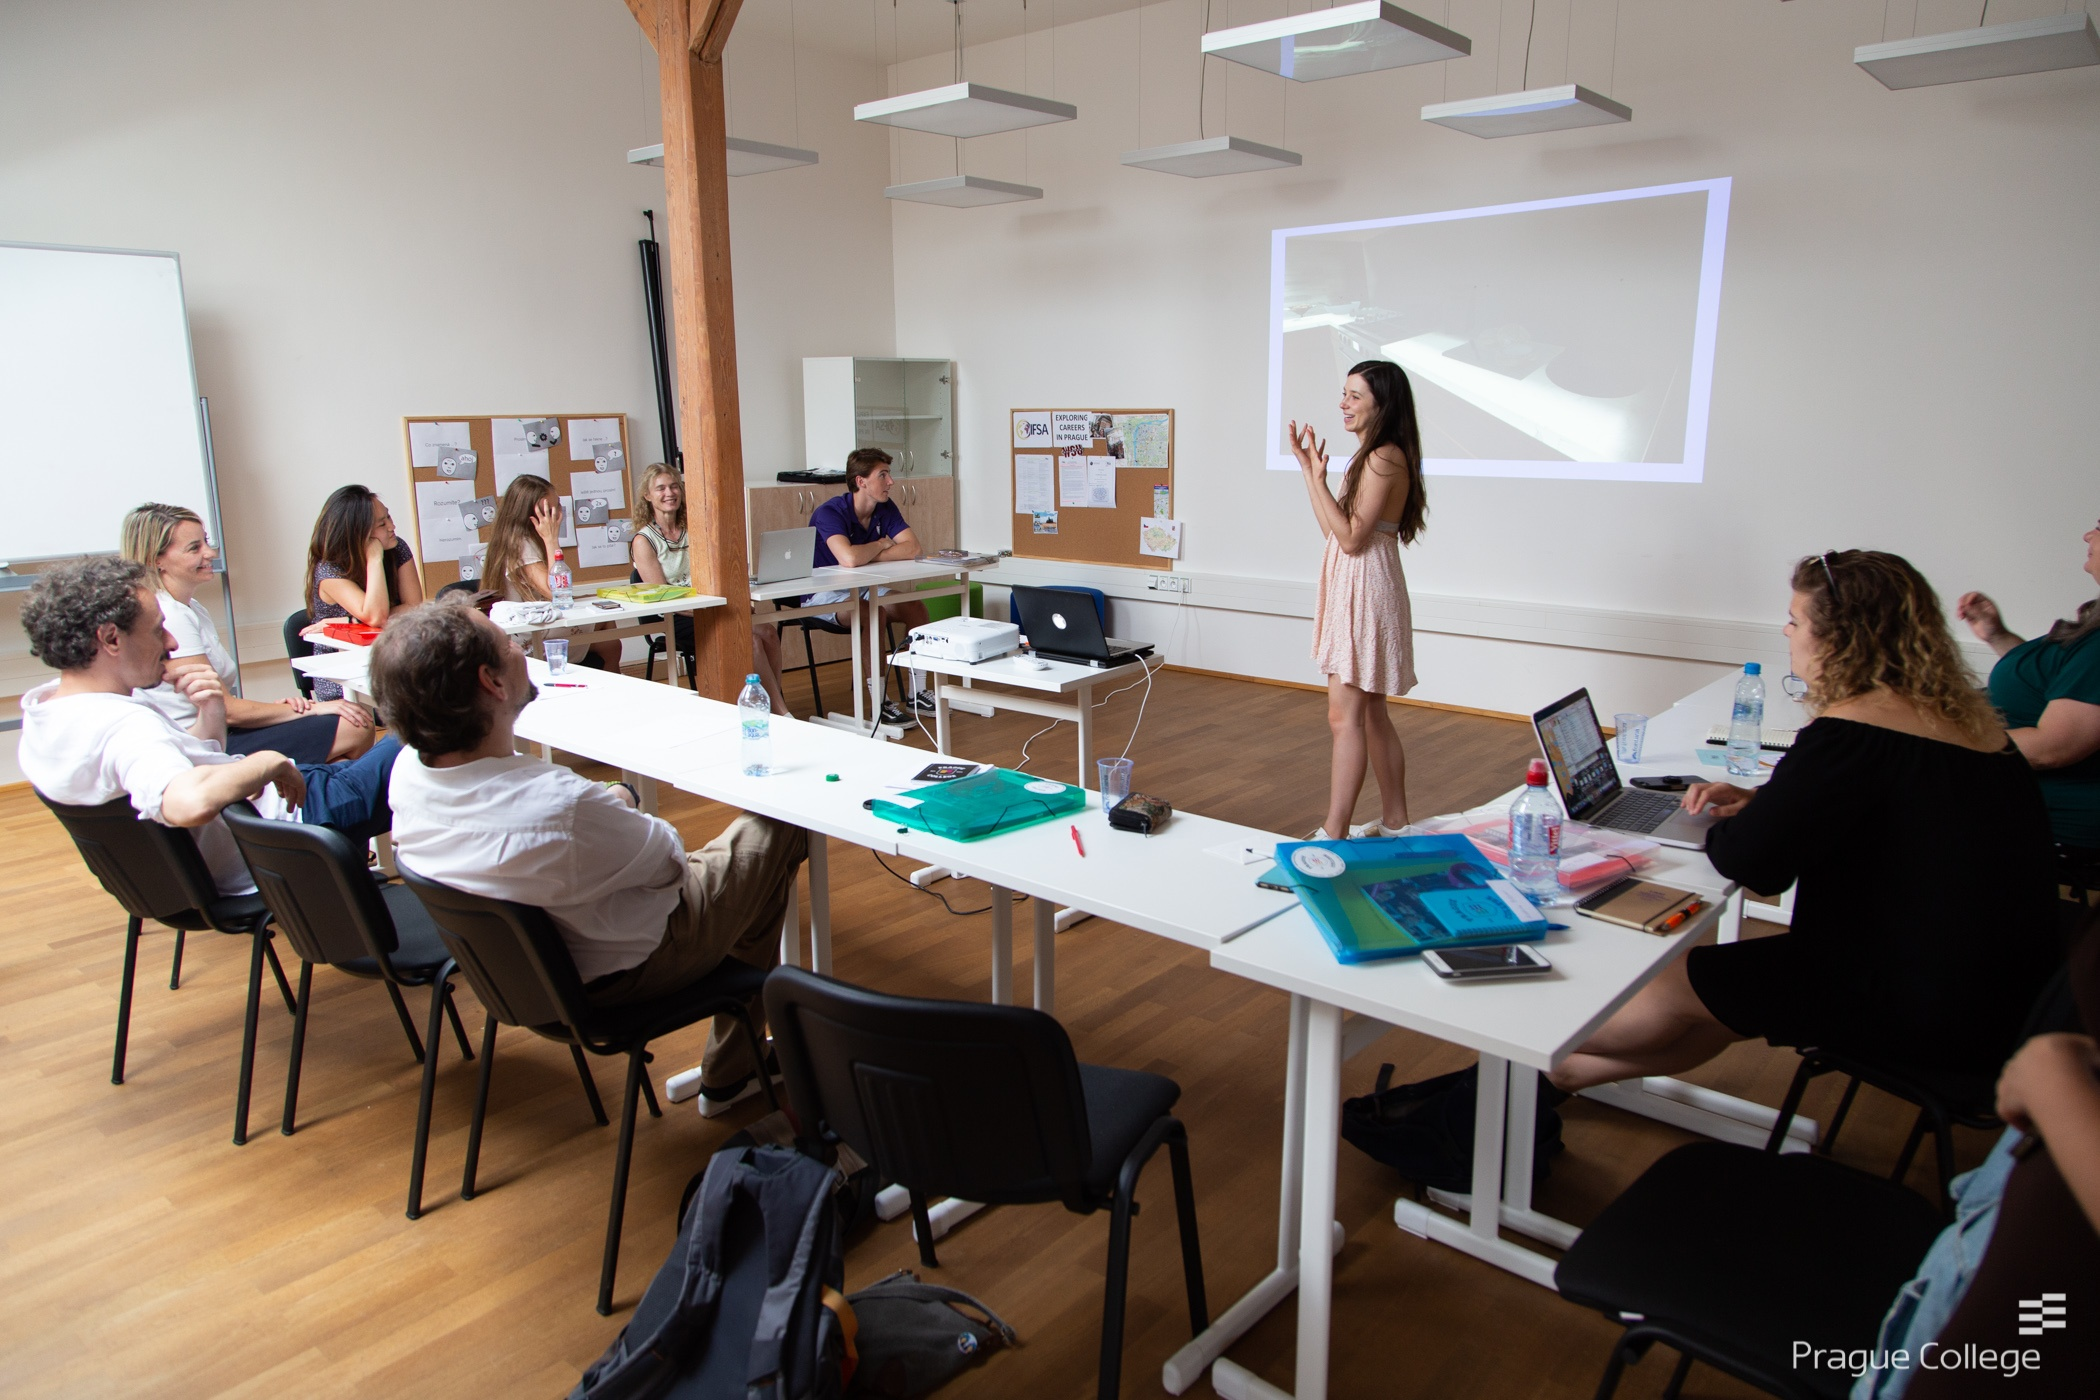 American studentsconclude their Prague College semester